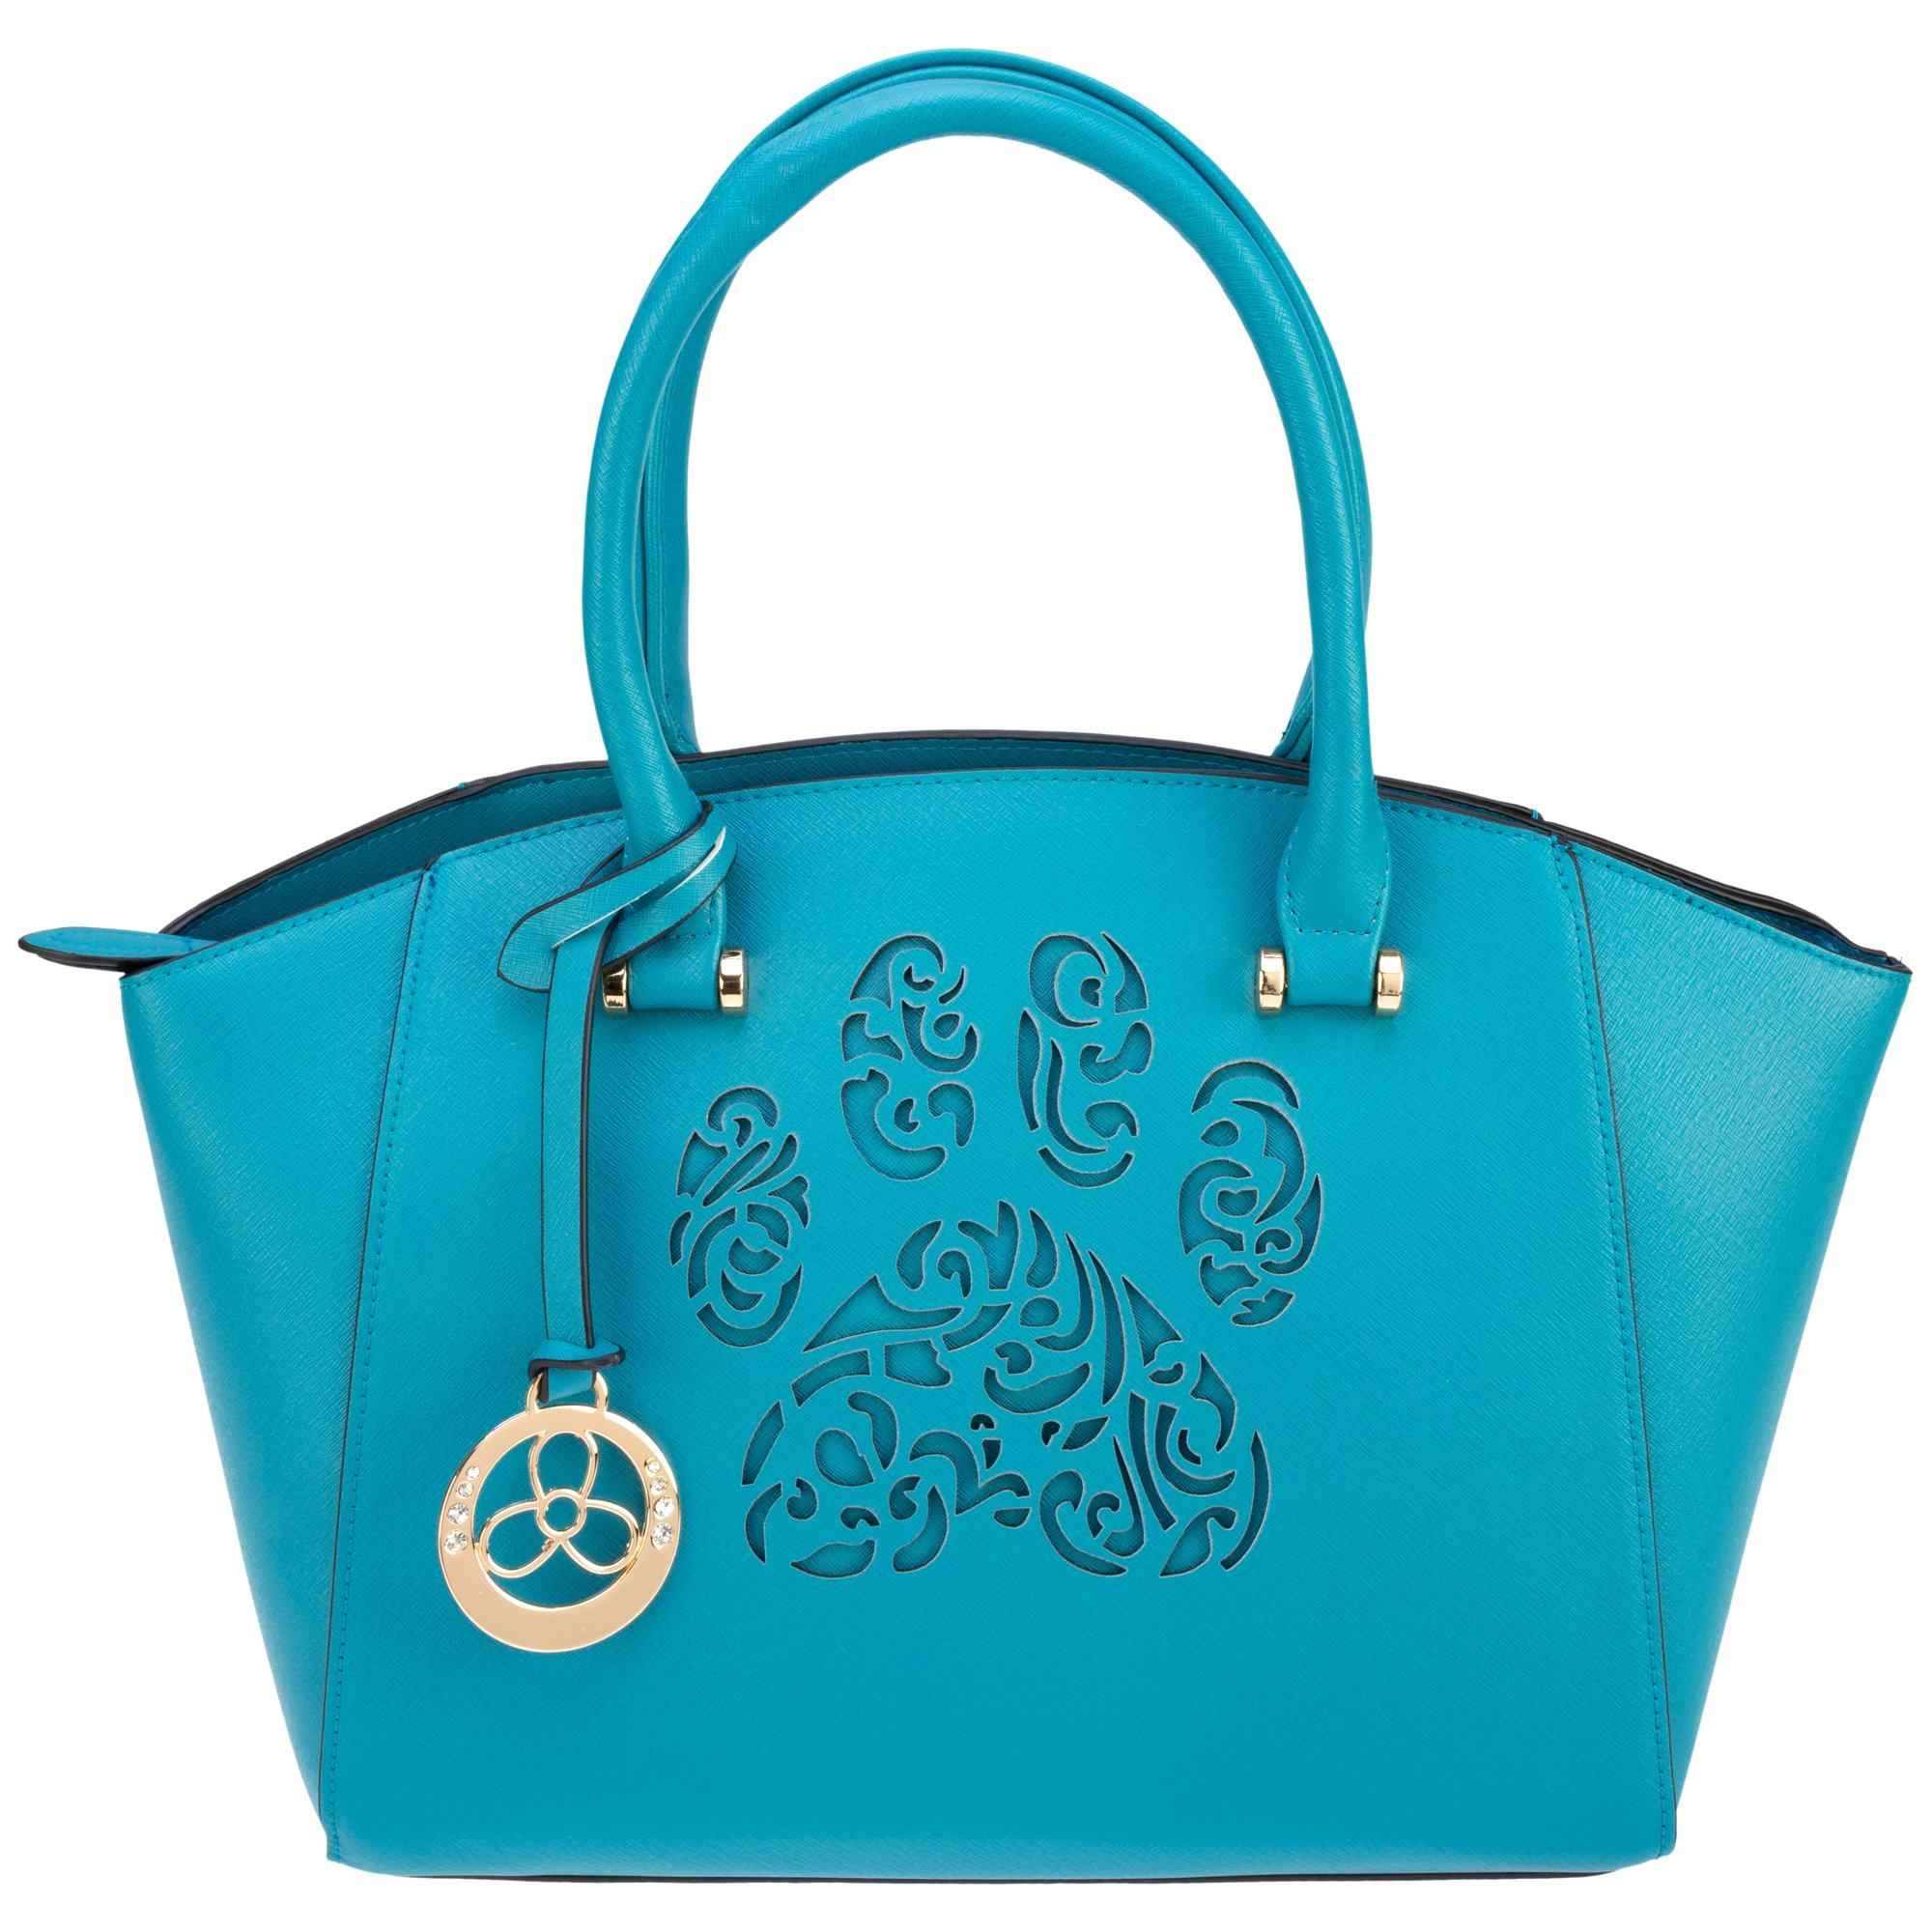 ... Pawsitively Beautiful Handbag ... 1f2297c8506da